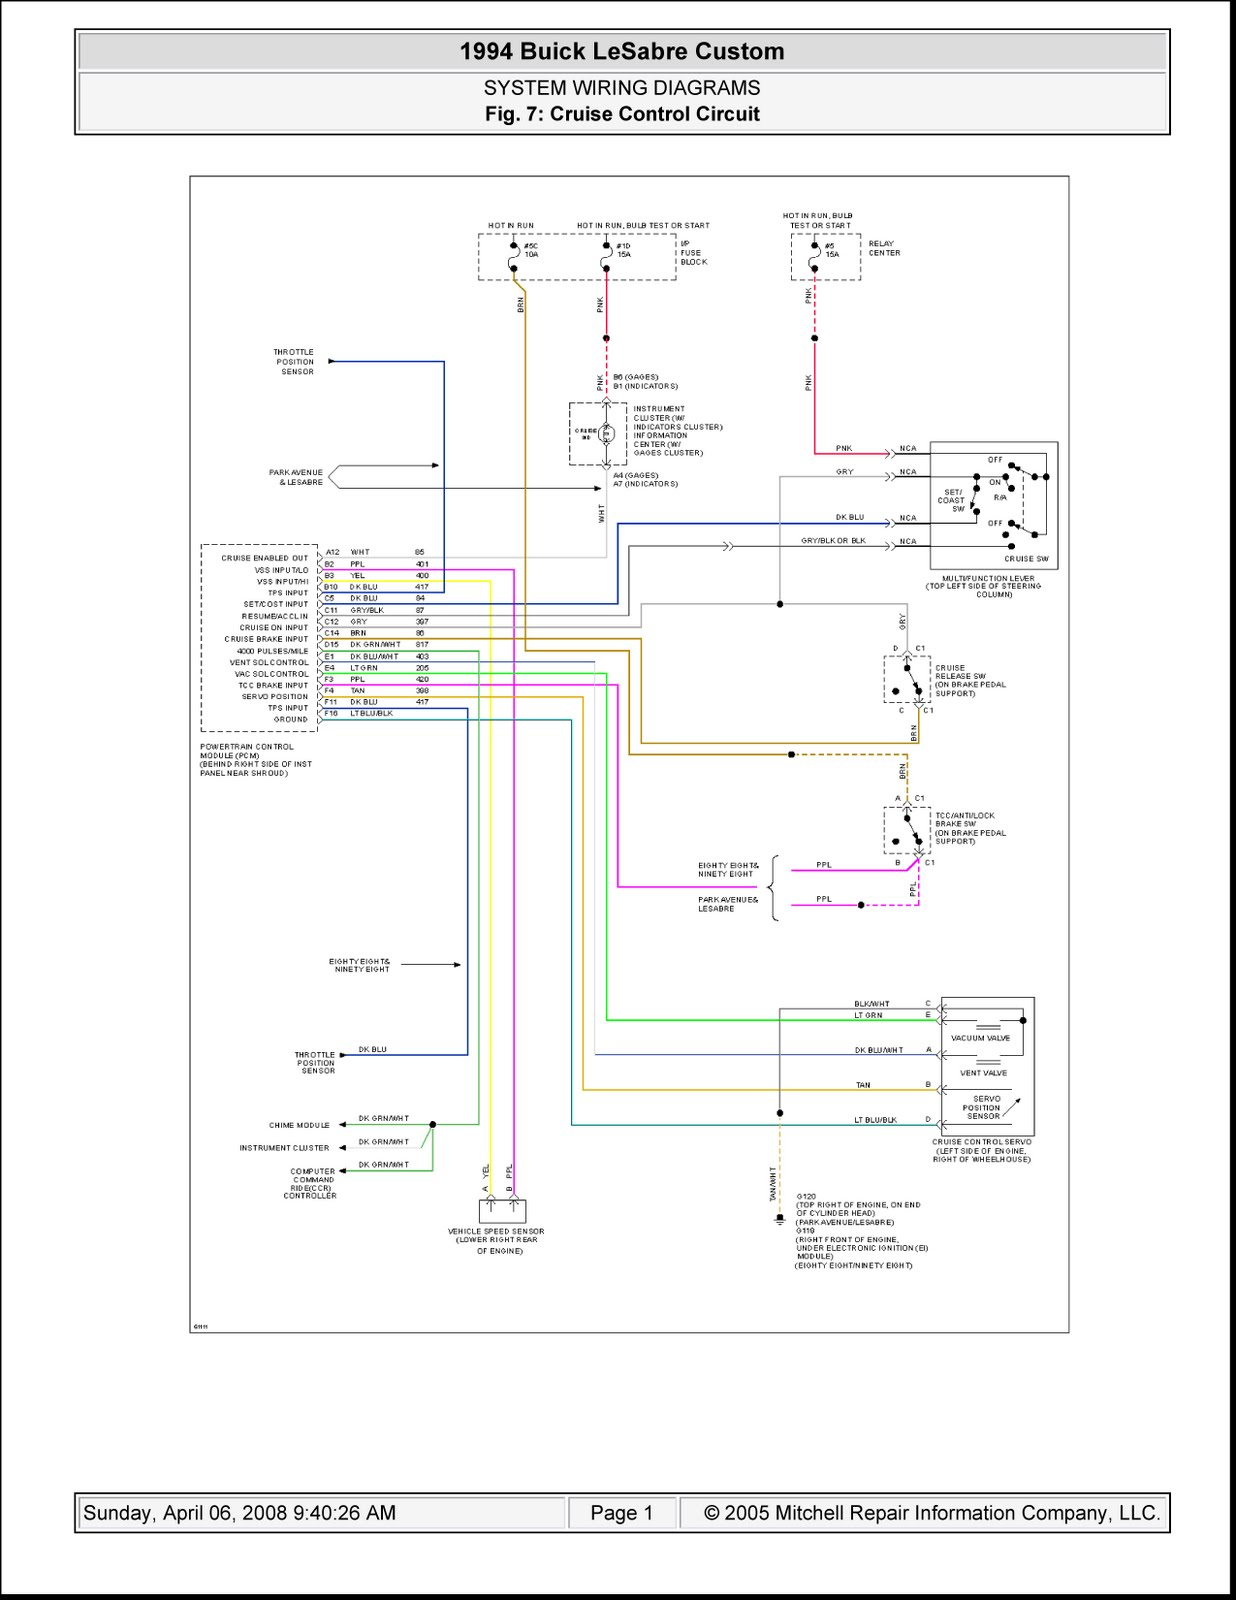 1e9 wiring diagram 1994 isuzu trooper | wiring resources  wiring resources